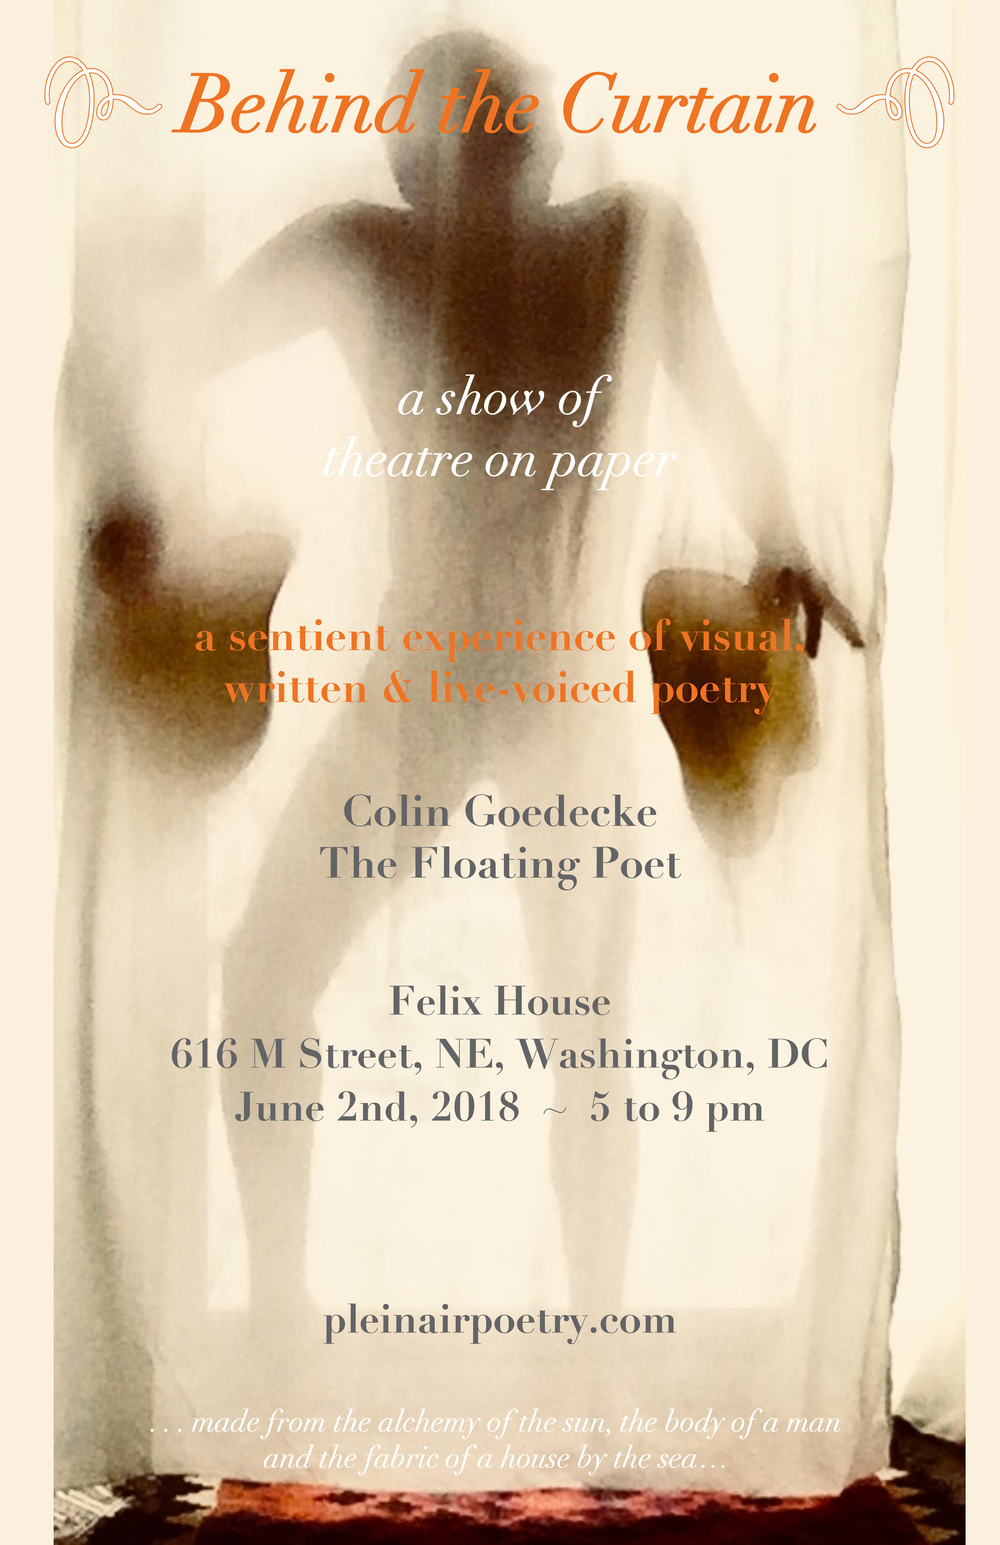 """Poster for one of the traveling performances of the experiential art show of theatre-on-paper, """"Behind the Curtain,"""" by your Poet & Poetorialist"""